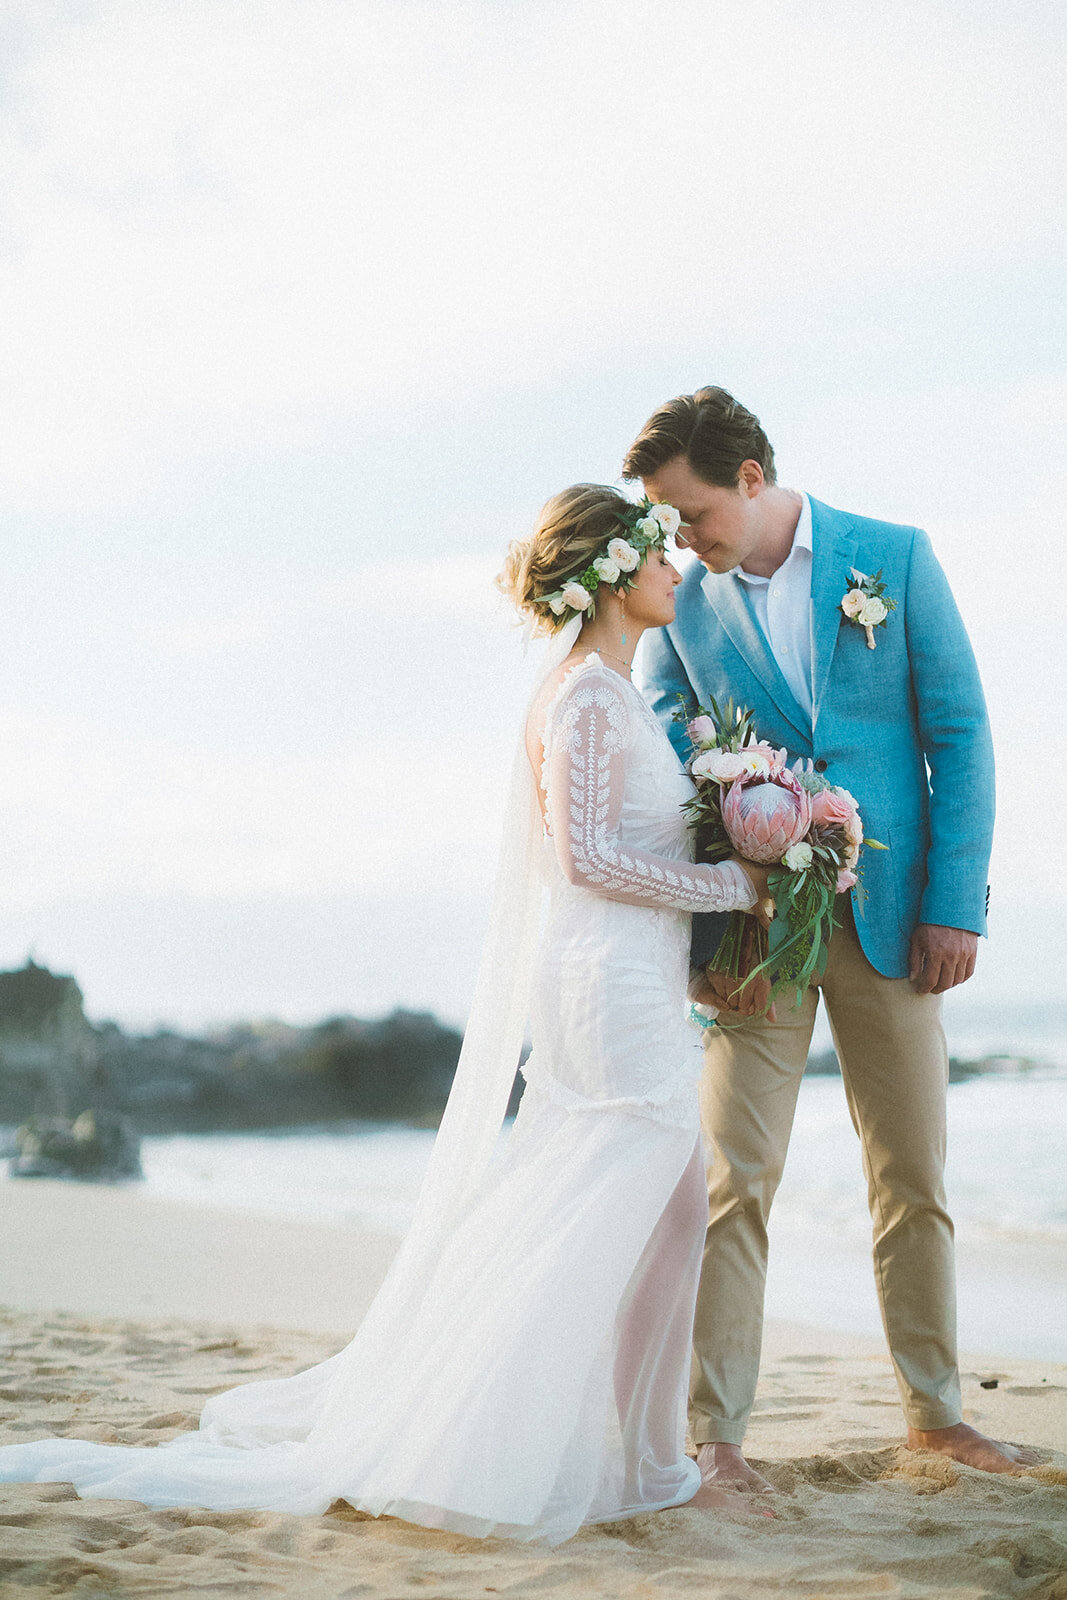 Maui wedding photographer20181126_0021.jpg